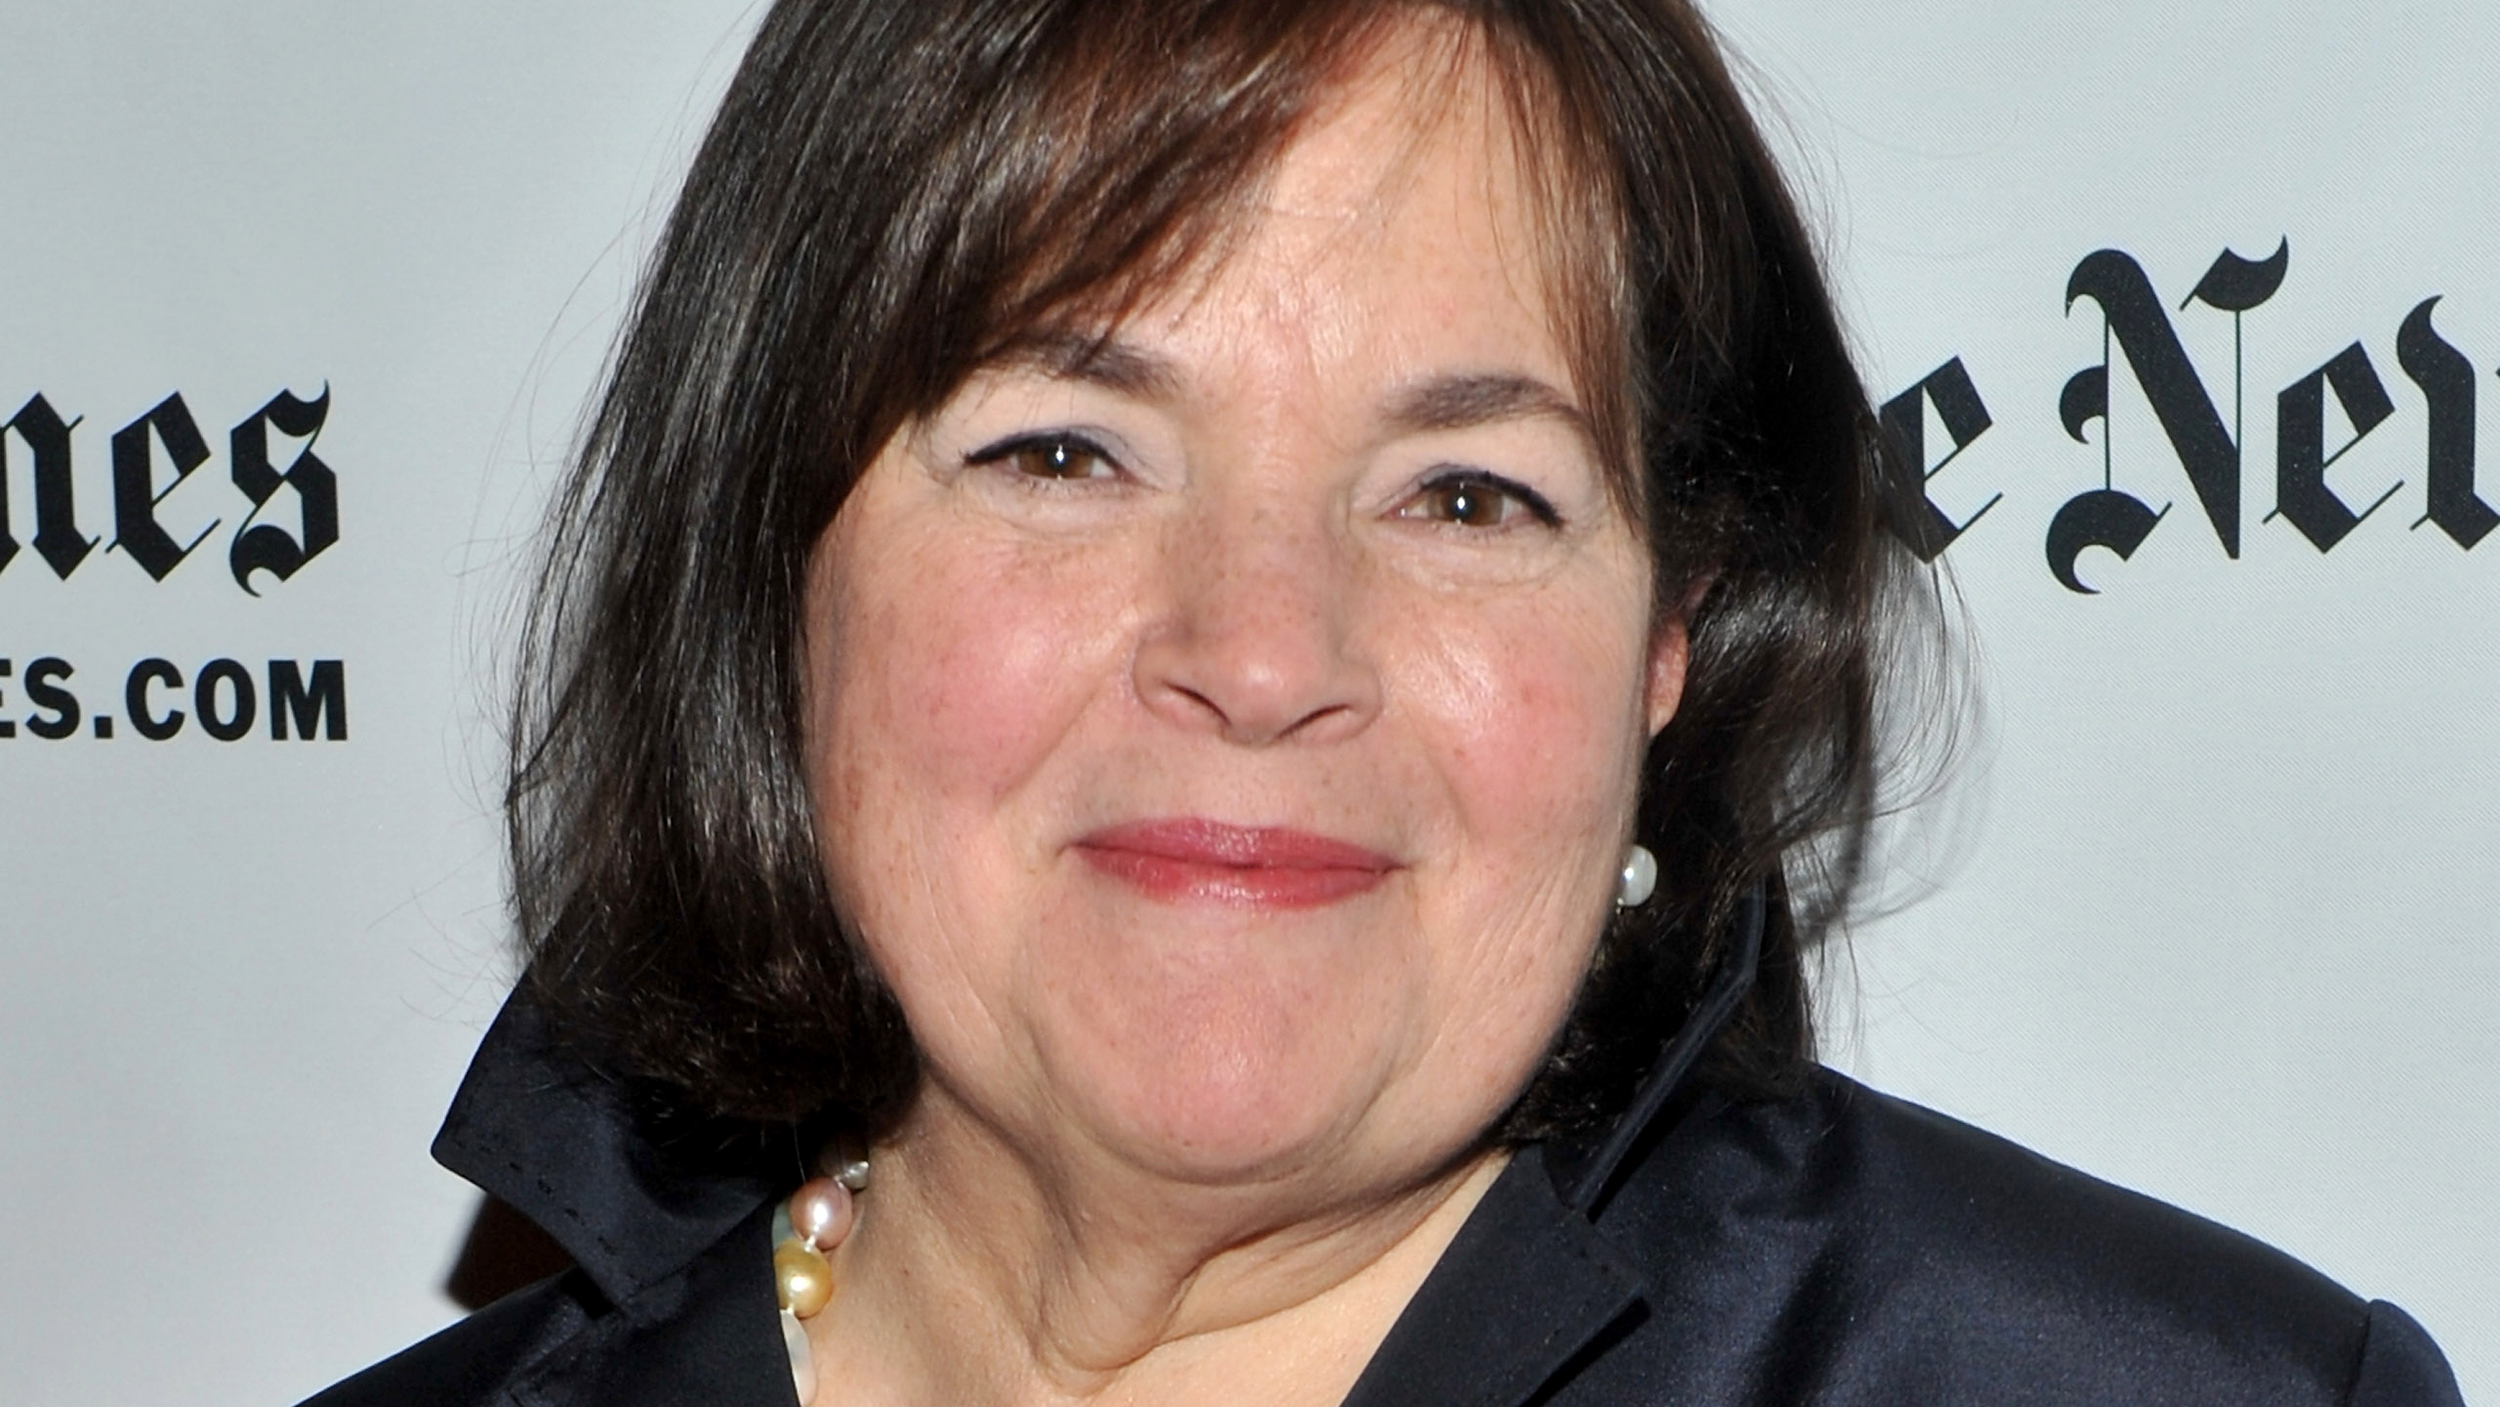 ina garten's new cooking show 'cook like a pro' - today